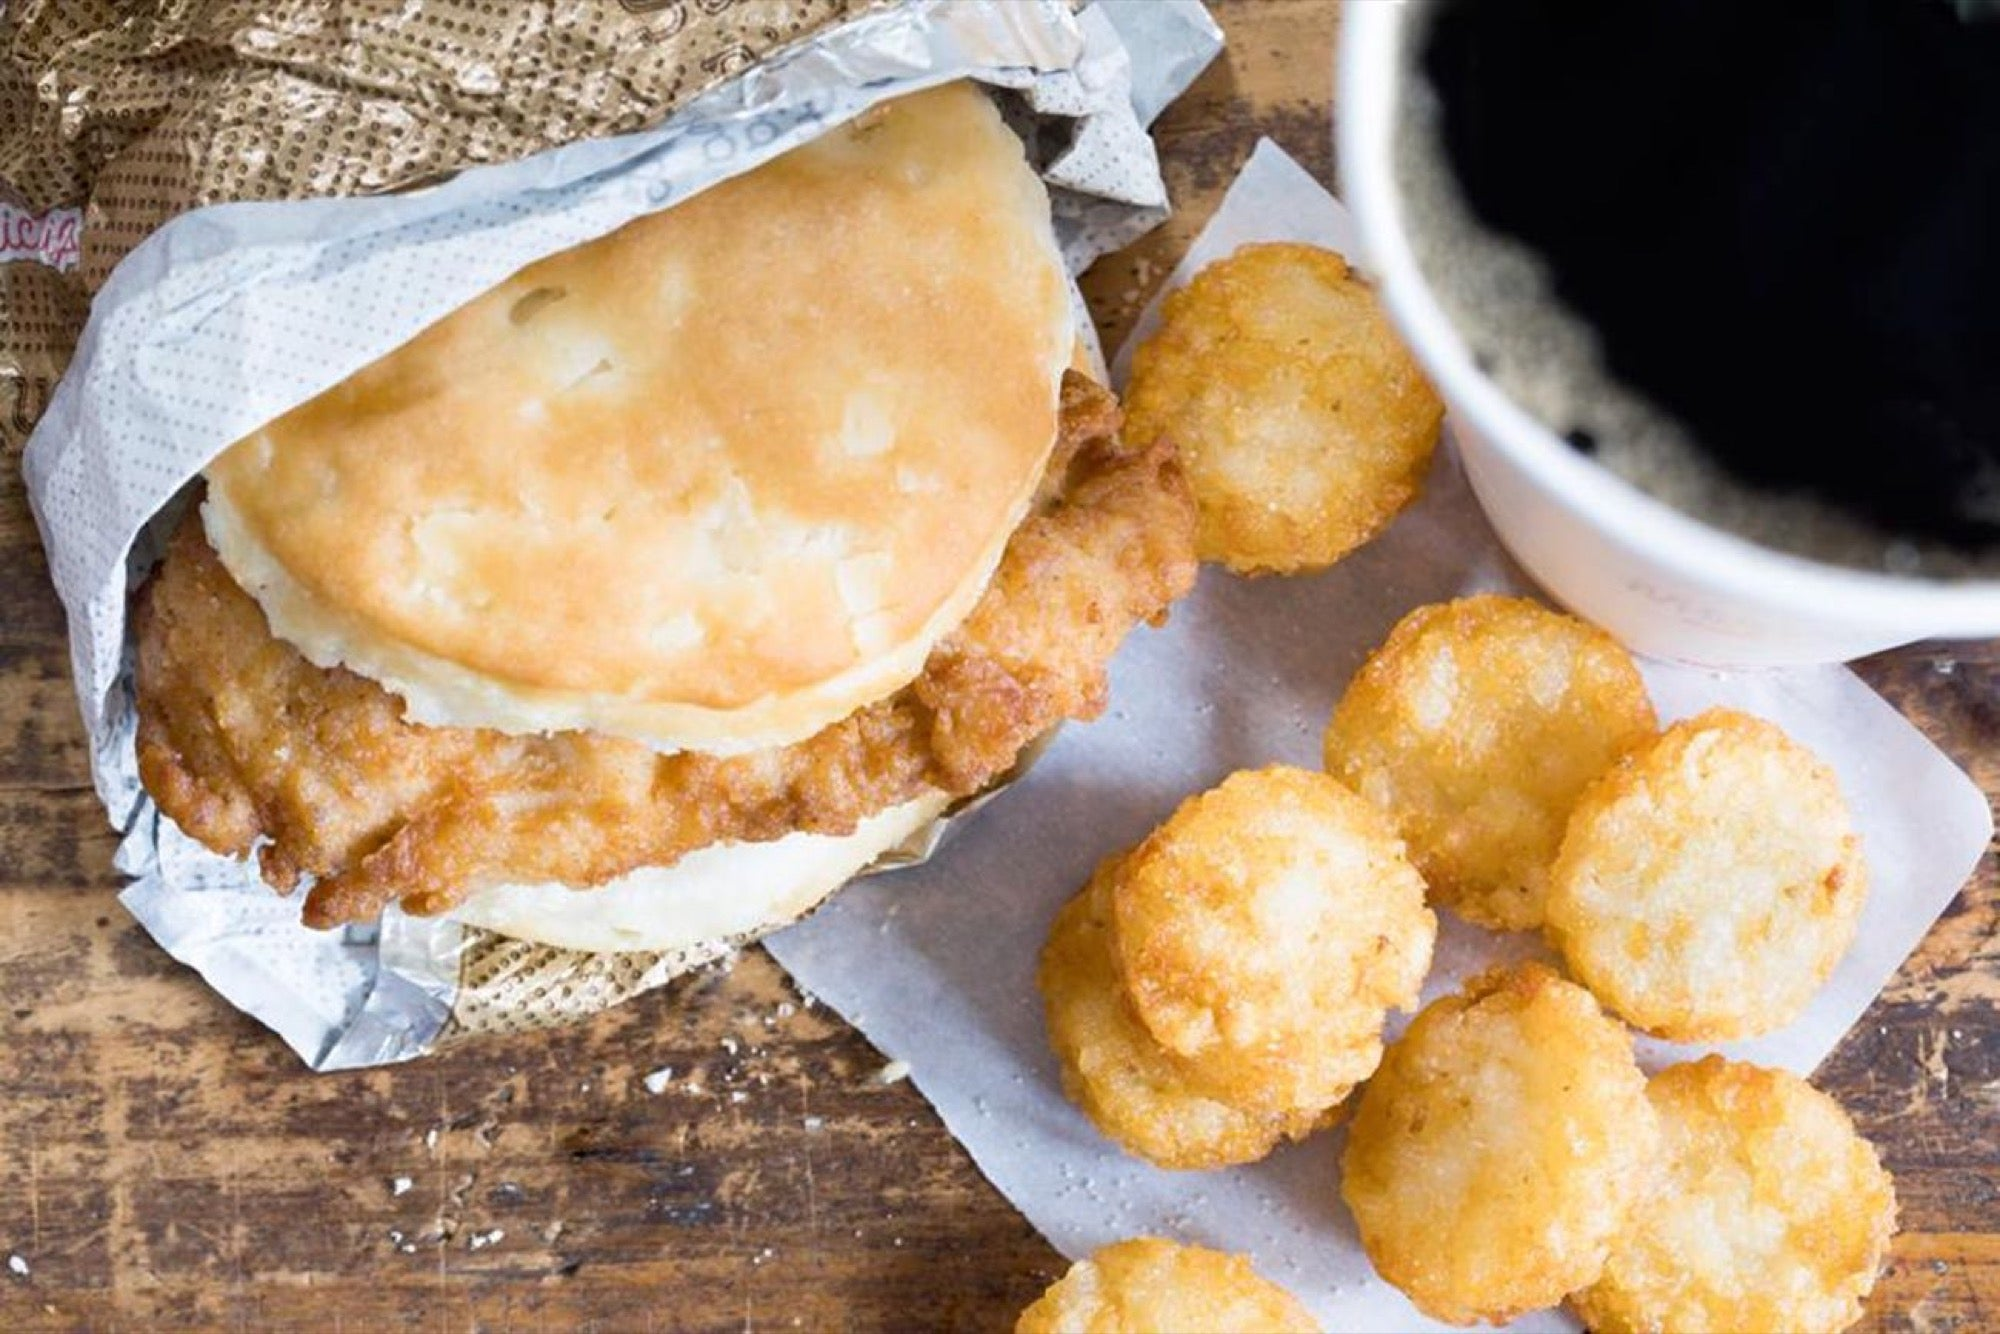 5 Things You Need to Know Before Investing in a Chick-fil-A Franchise